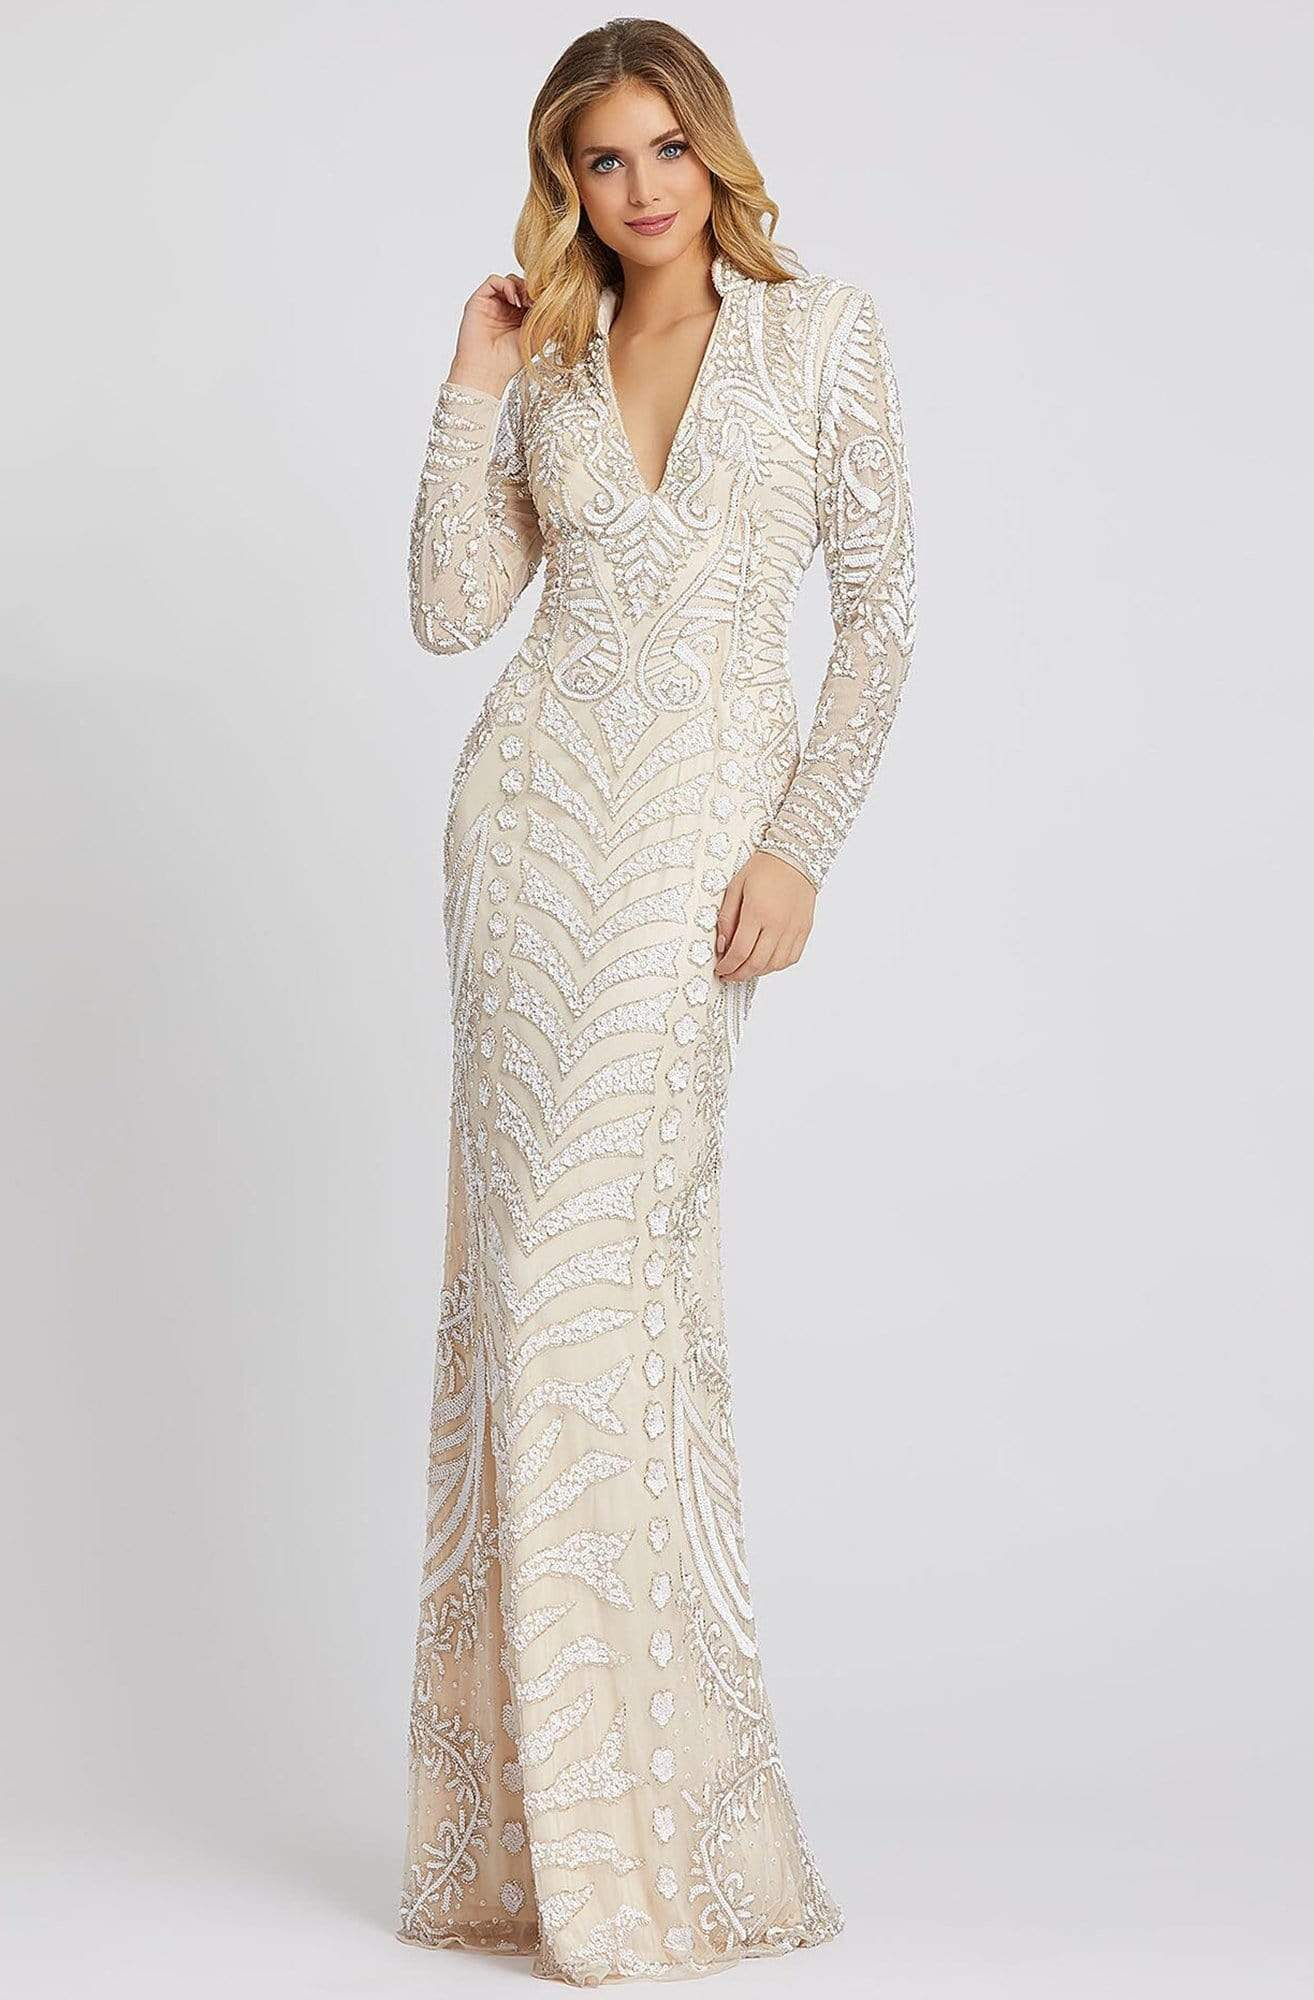 Mac Duggal Evening - 5173D Sequined Long Sleeves Collared Dress Evening Dresses 0 / Nude